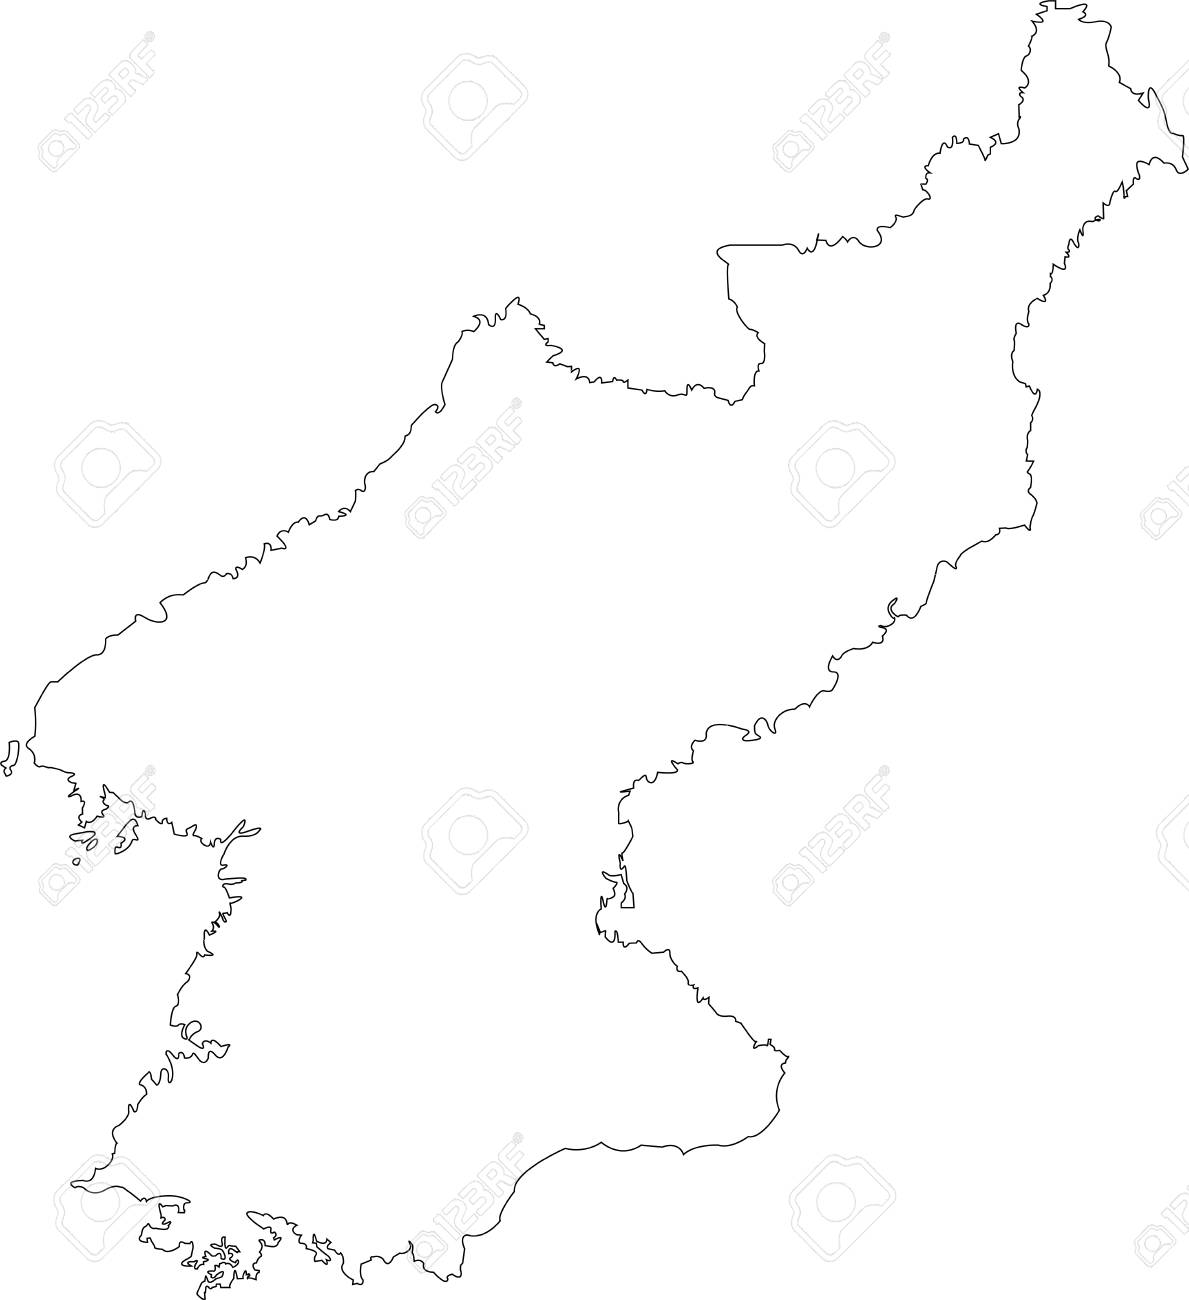 Contour Map Of South Korea Map Black Outline North Korea Royalty Free Cliparts Vectors And Stock Illustration Image 103830093